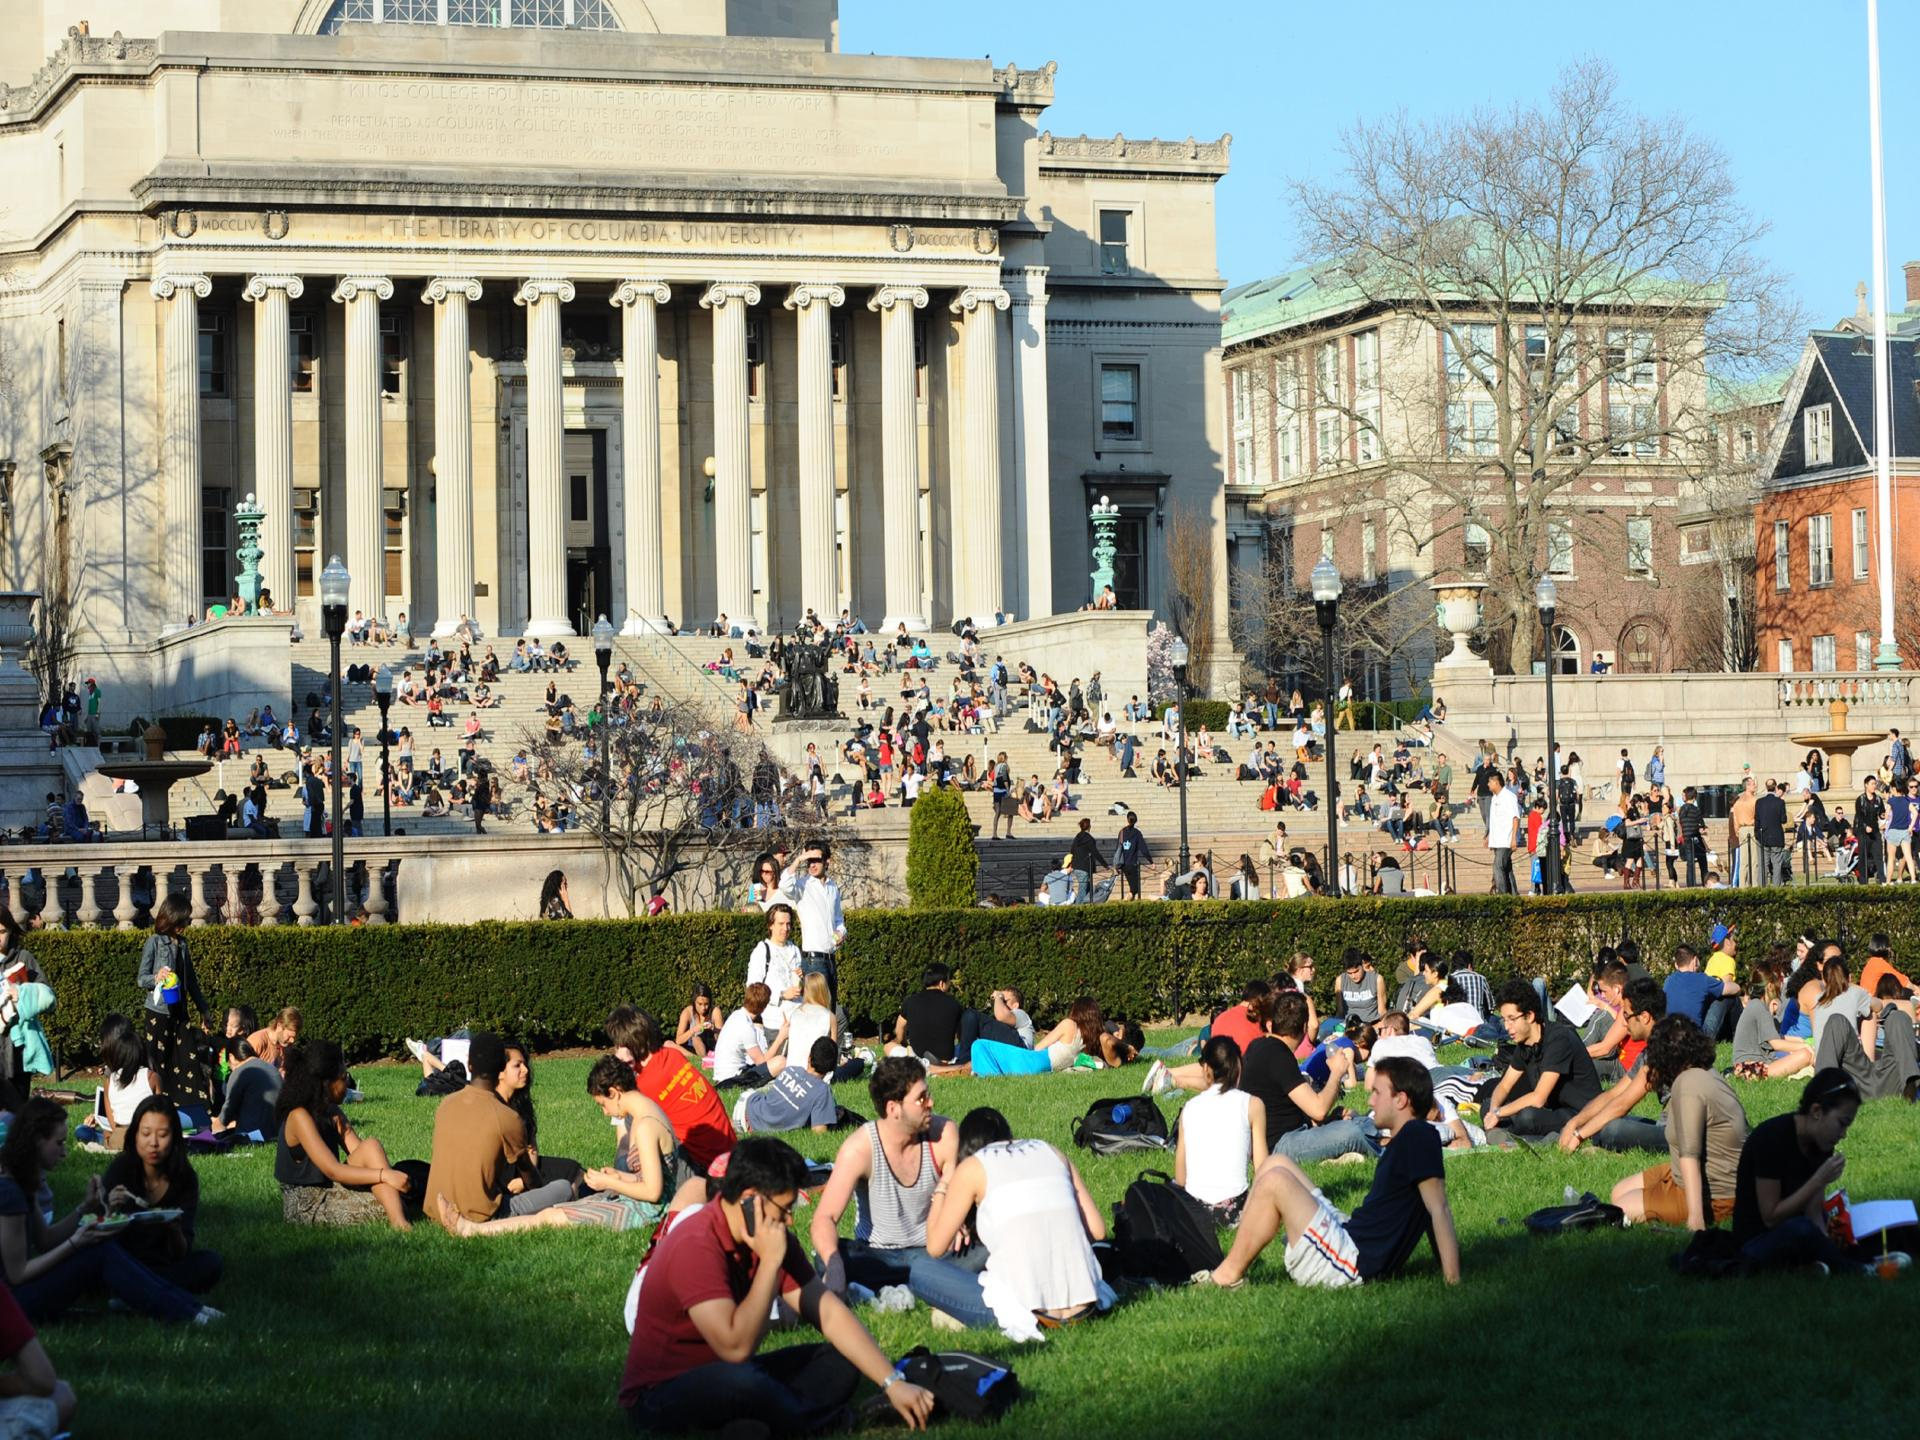 Columbia University in our backyard!